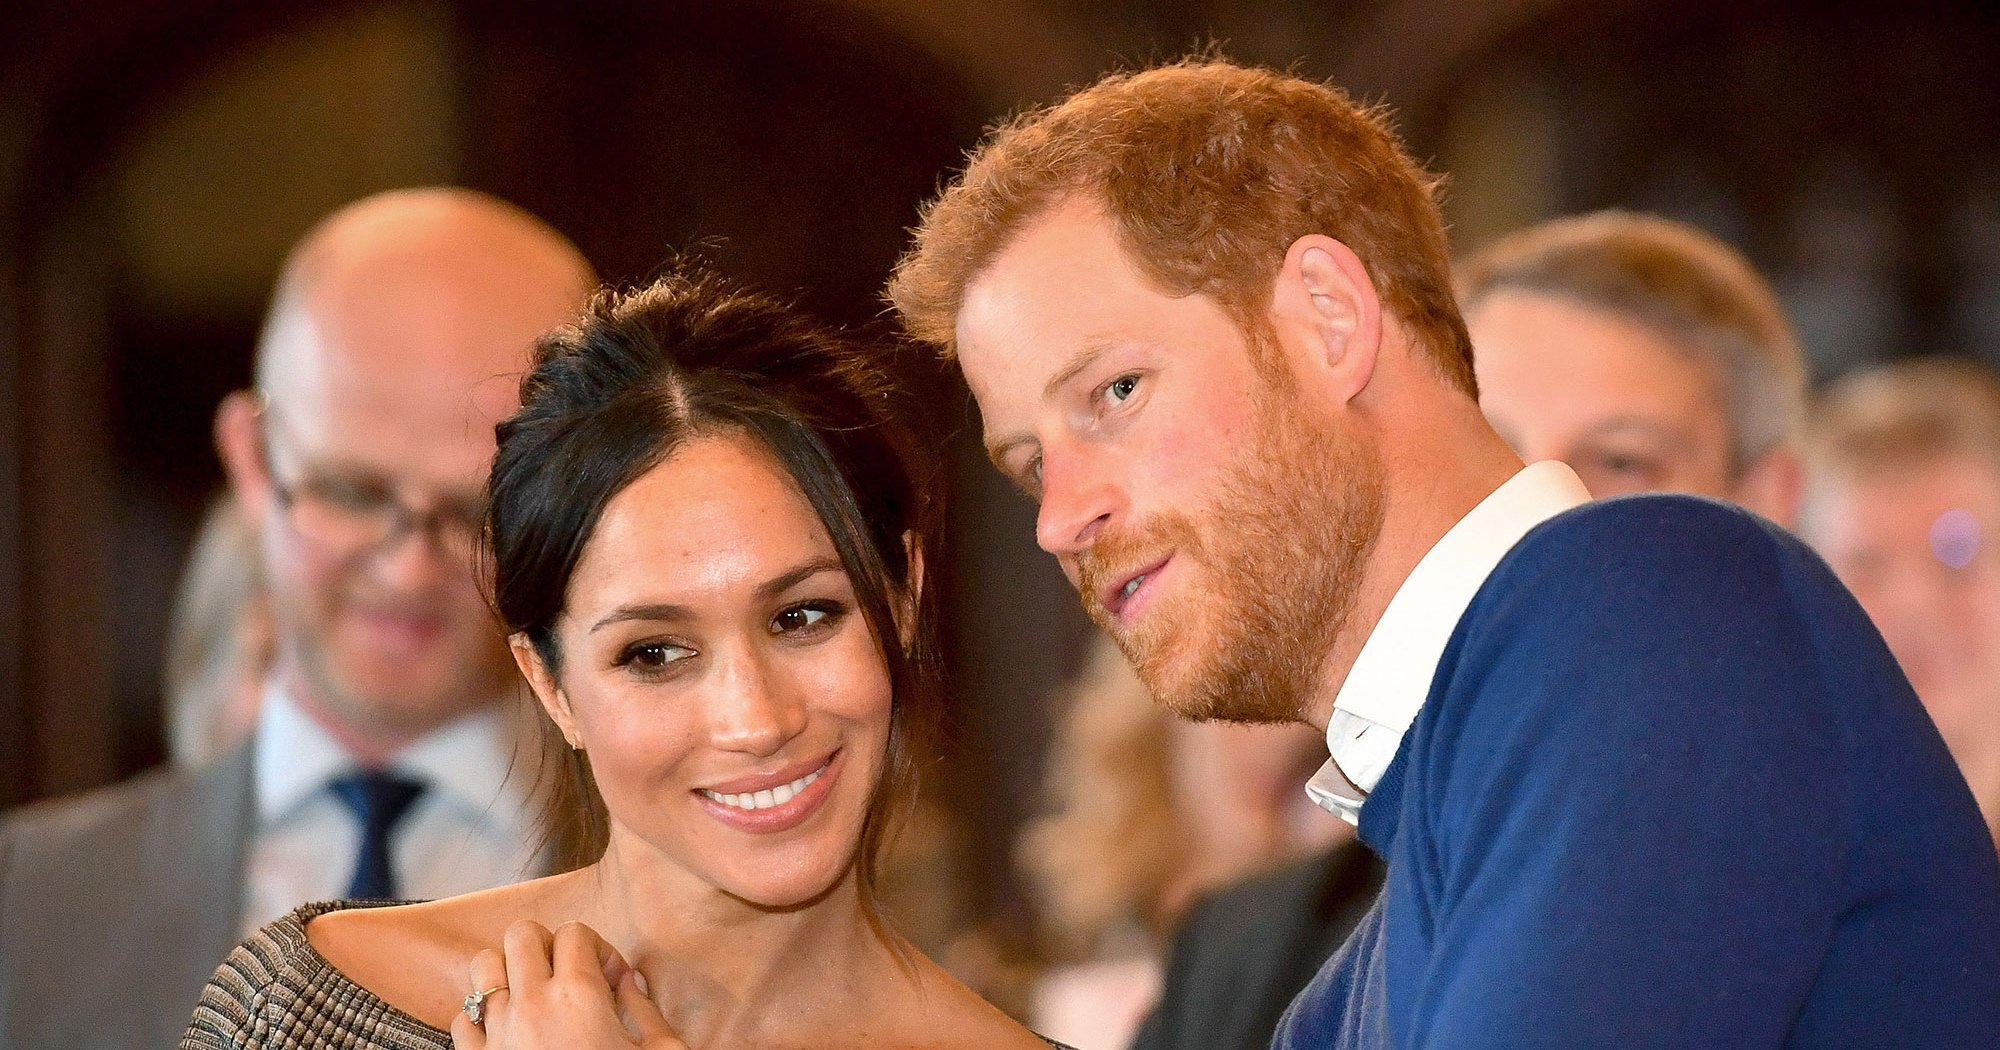 The Real Reason Meghan Markle Didn't Open Baby Shower Gifts